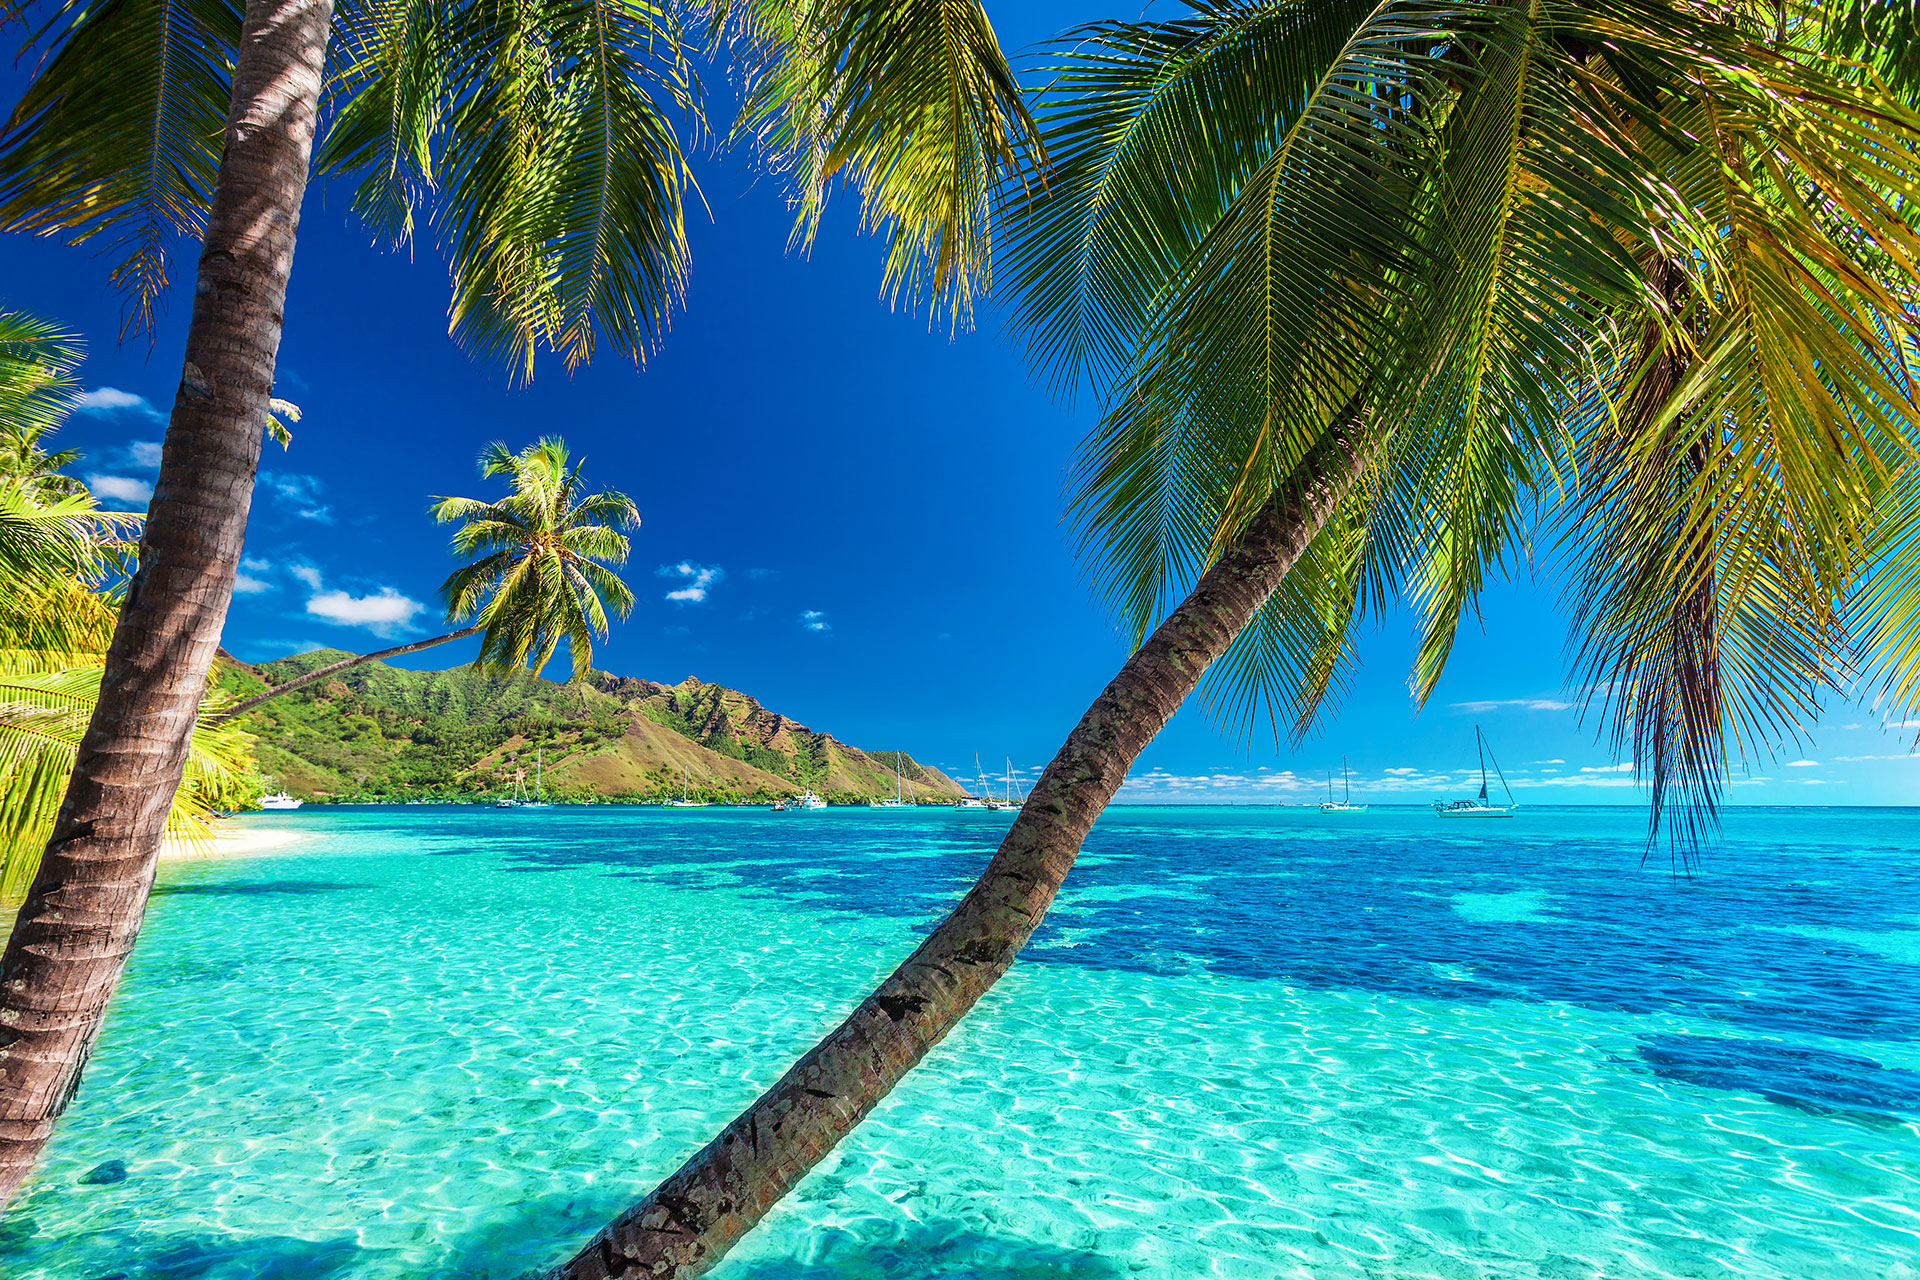 Blue waters in Tahiti